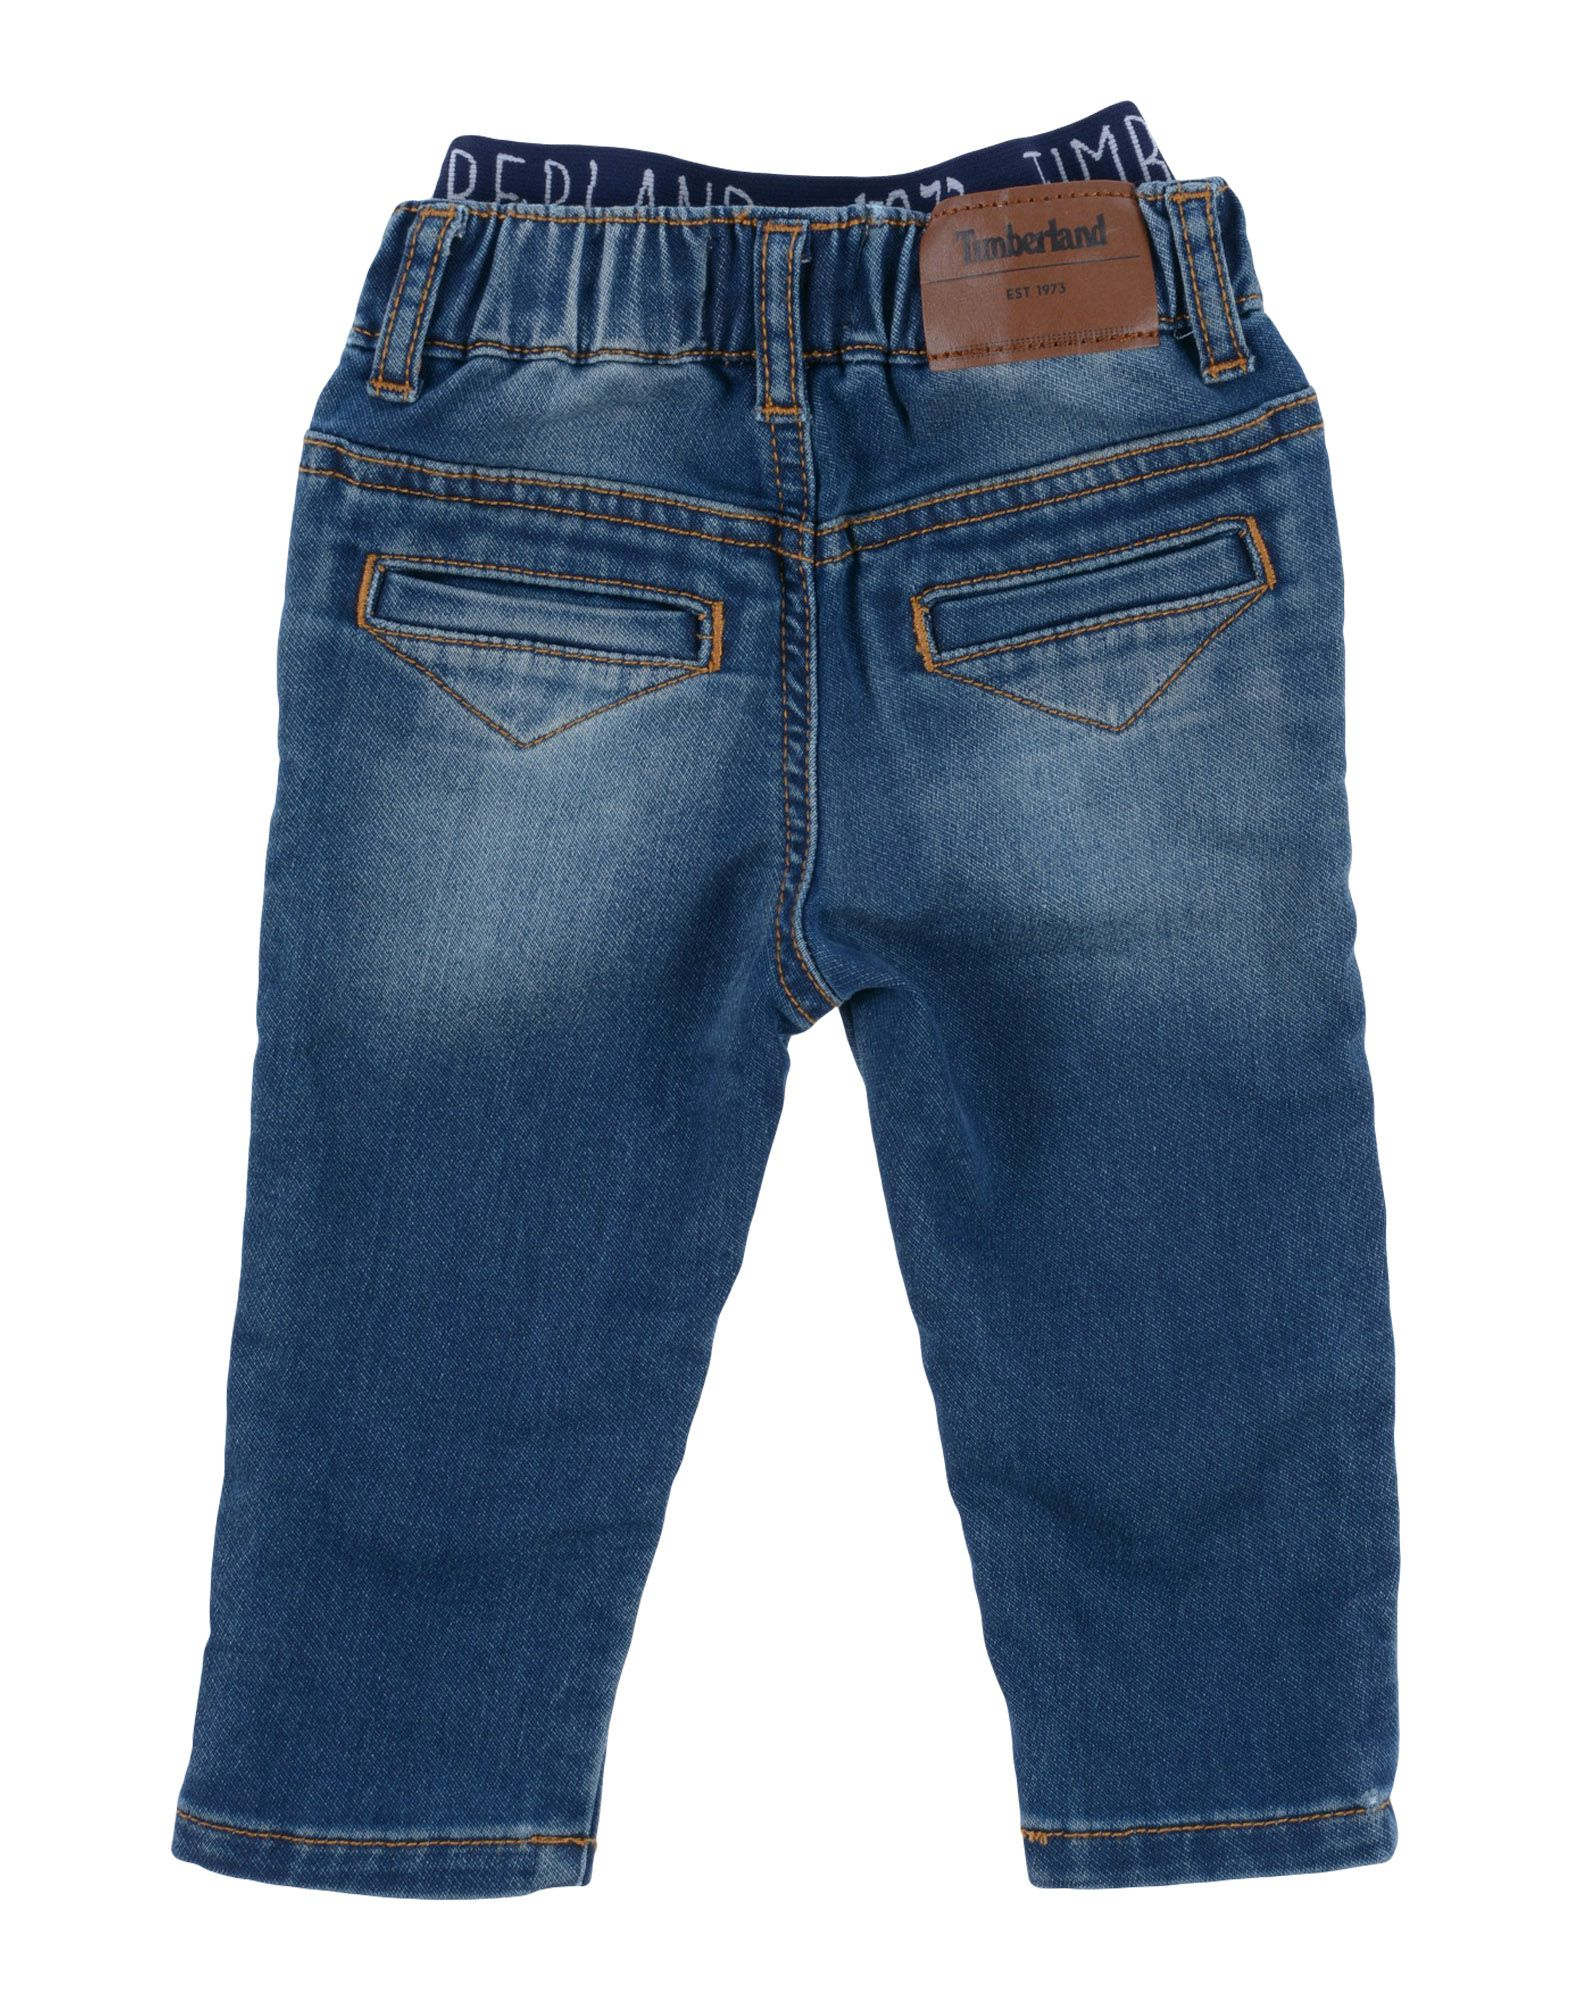 Timberland - Denim - Denim Trousers - On Yoox.com